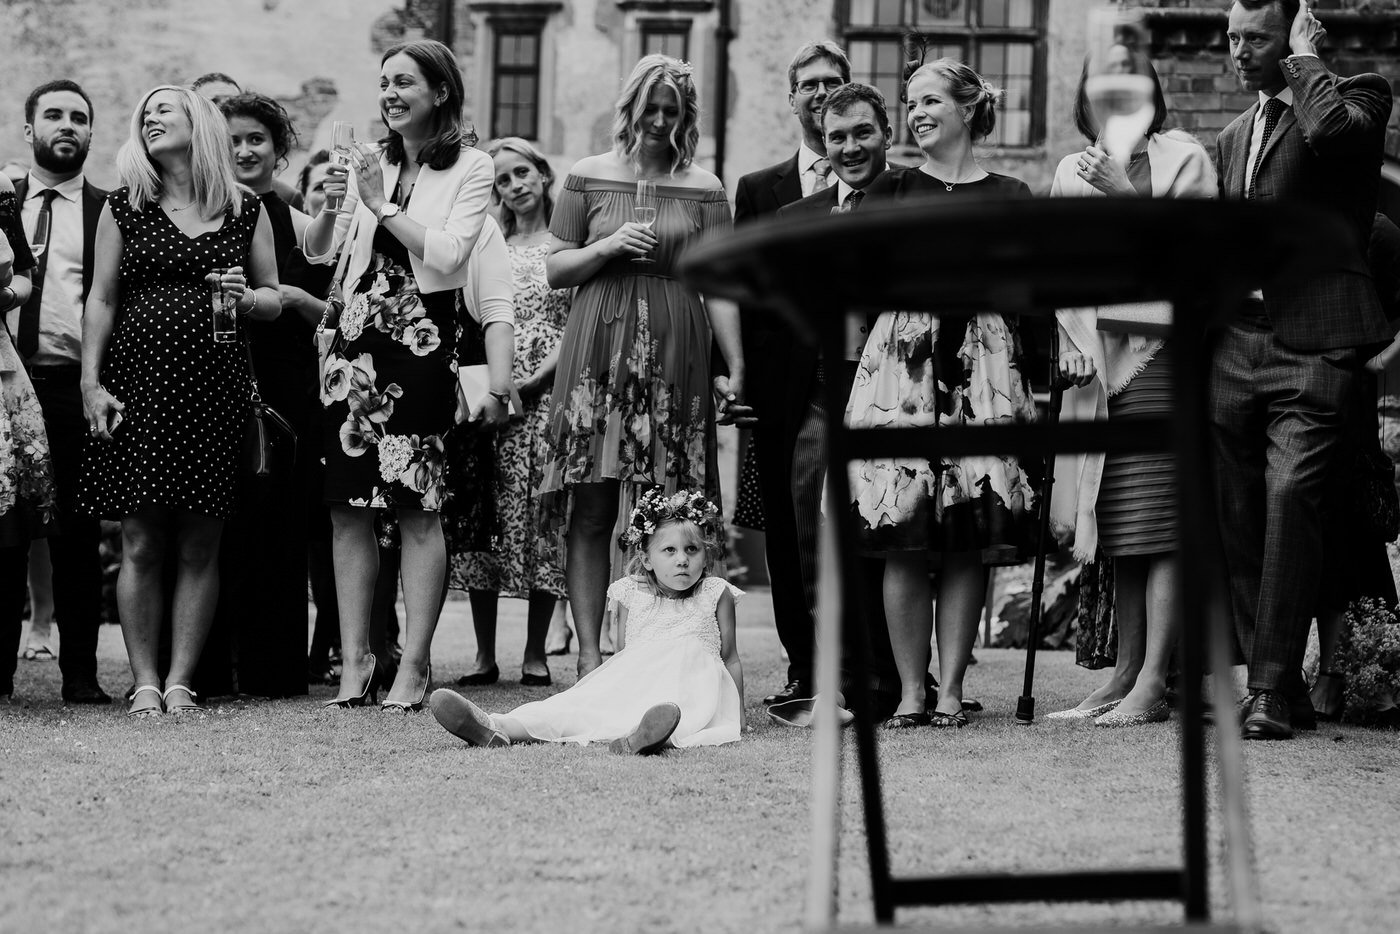 A flowegirl sitting on the floor while speeches take place